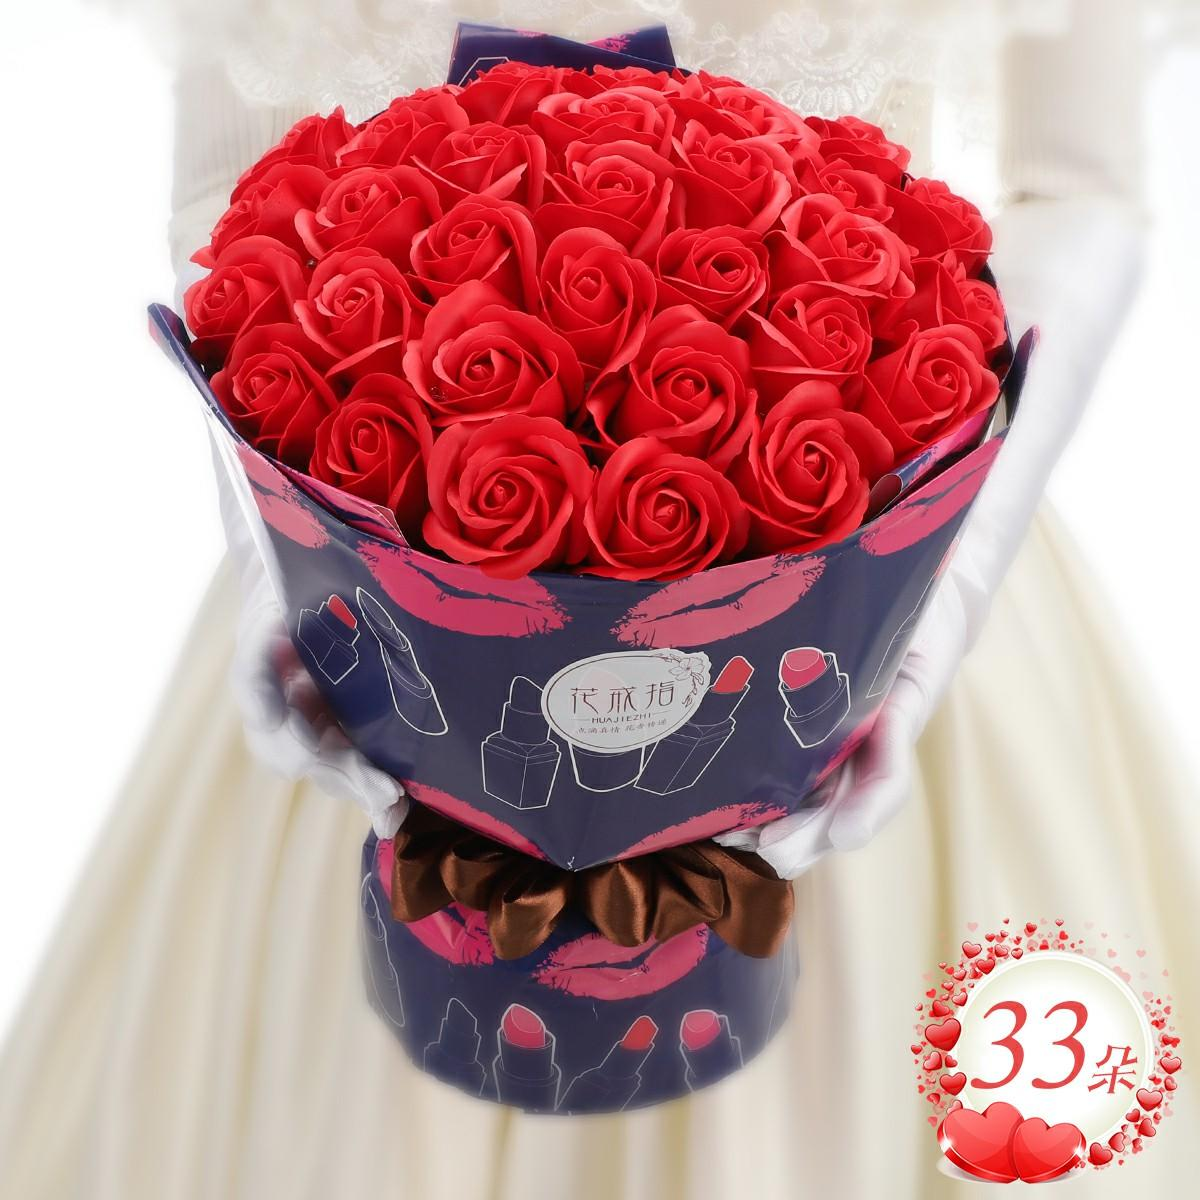 Rose Bouquet Romantic Lovers Day Valentines Day Gift Model Soap Flower to Send His Wife Girls Birthday Confession Network Safflower